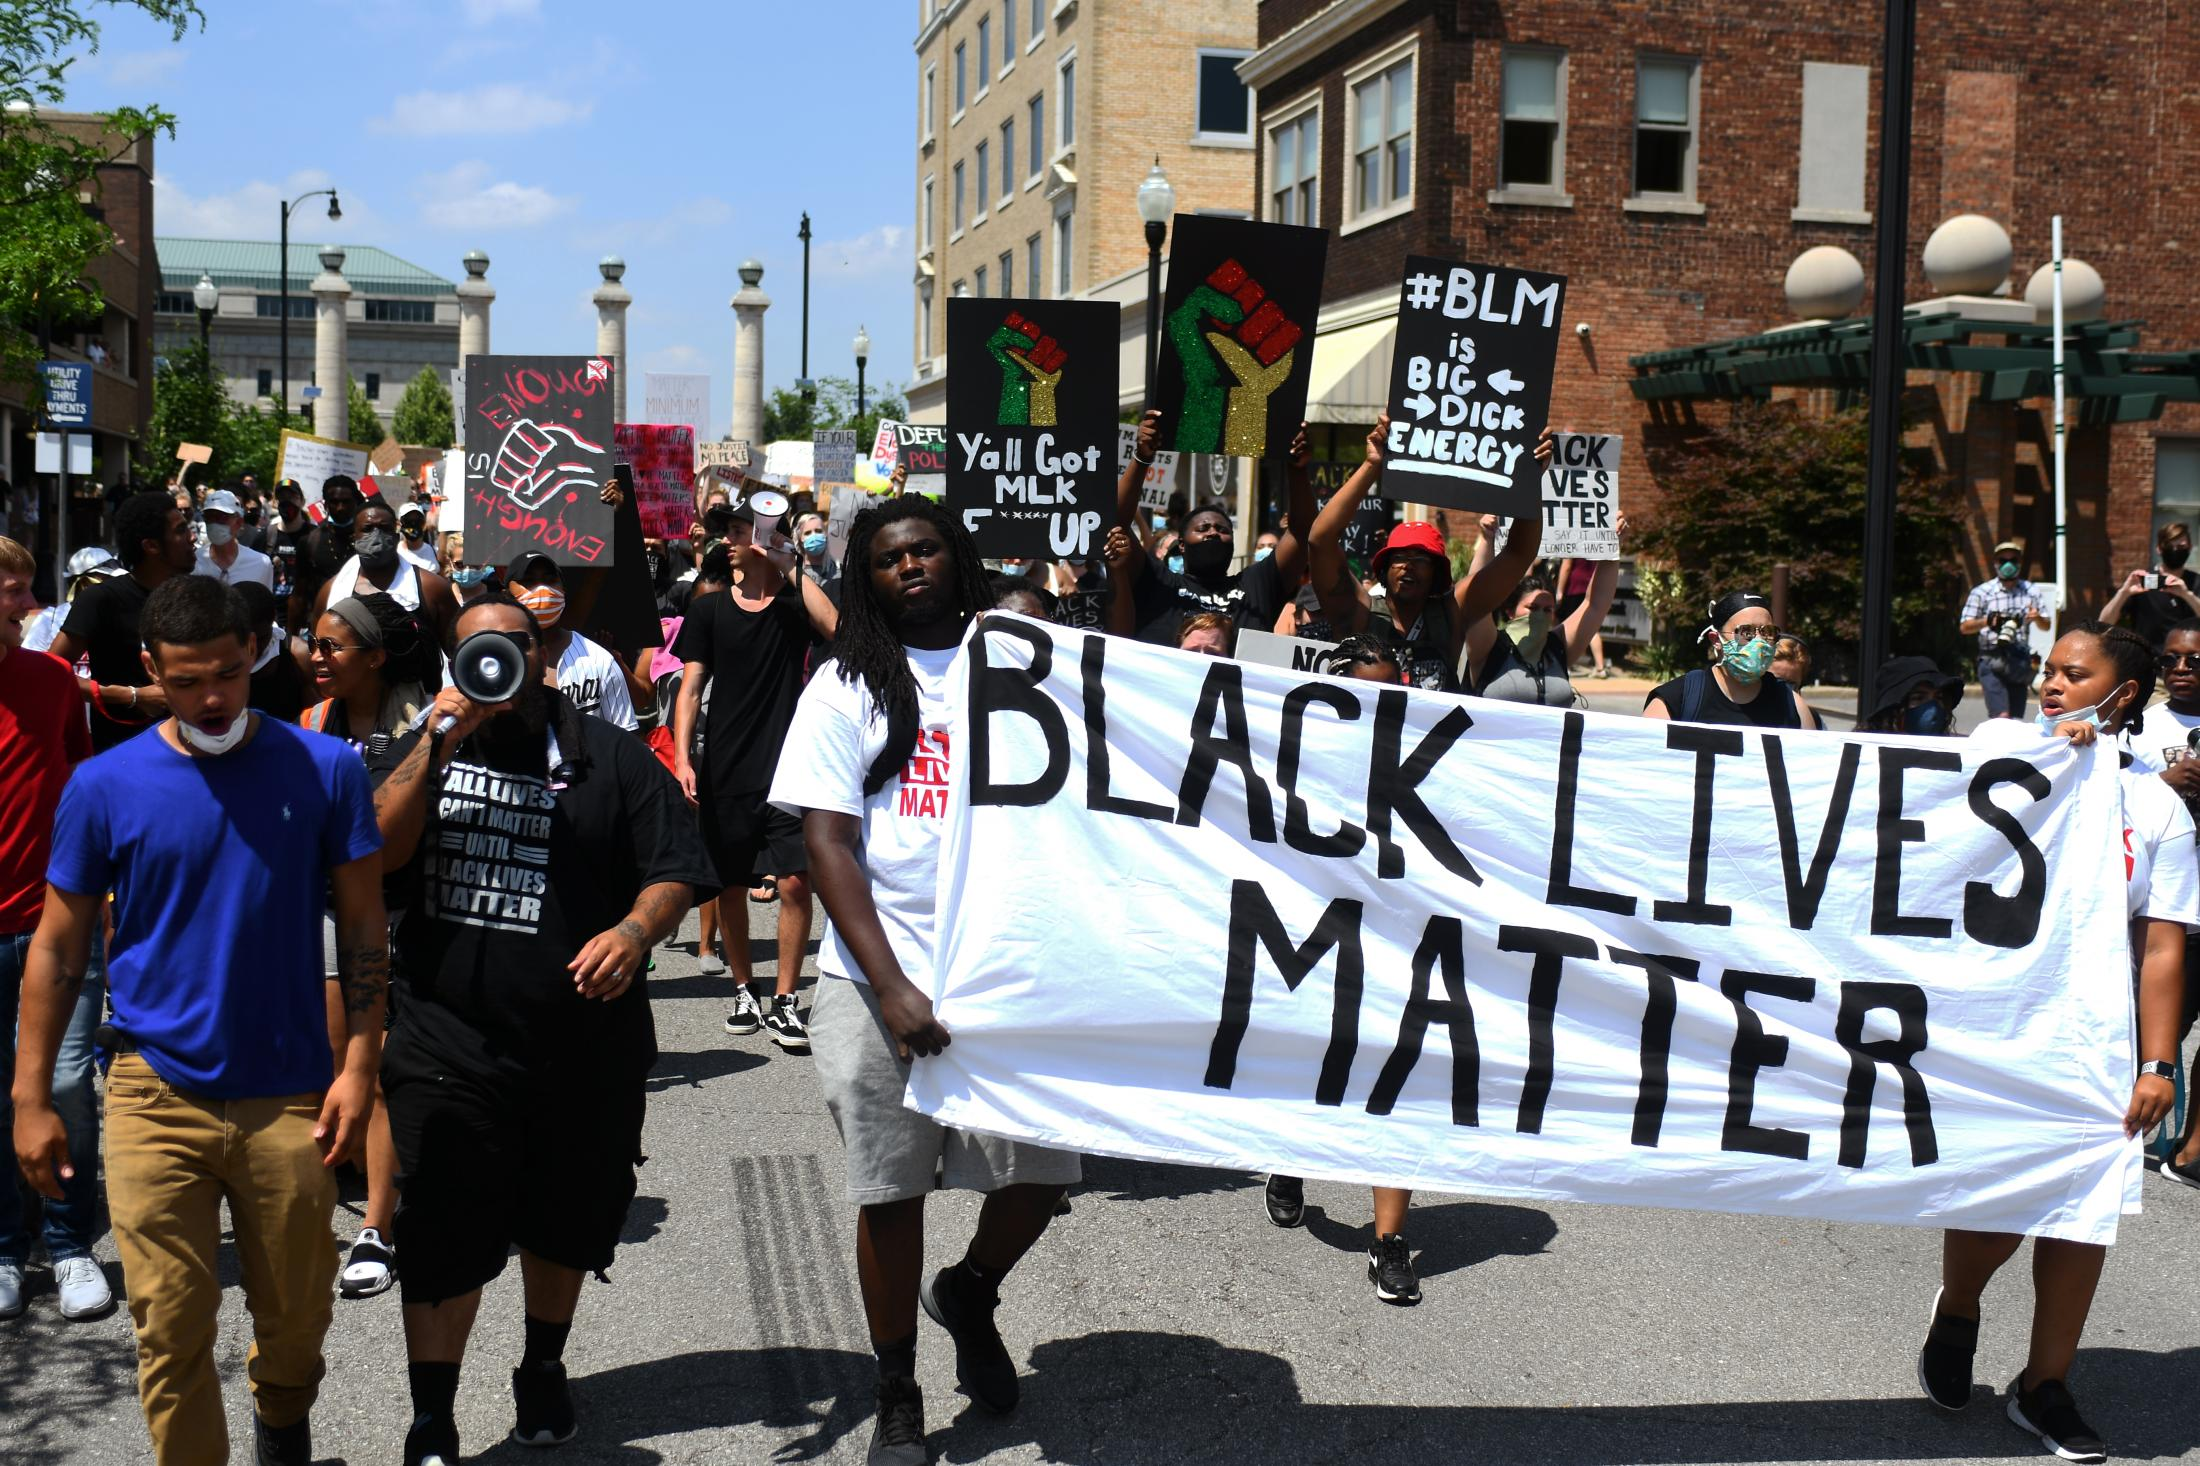 """Hundreds of protesters march after hearing speakers outside of the Boone County Courthouse on Sunday, June 7, 2020, in Columbia, Missouri. Attendees went around Downtown Columbia holding signs and shouting chants like """"Black Lives Matter"""" and """"No Justice, No Peace""""."""